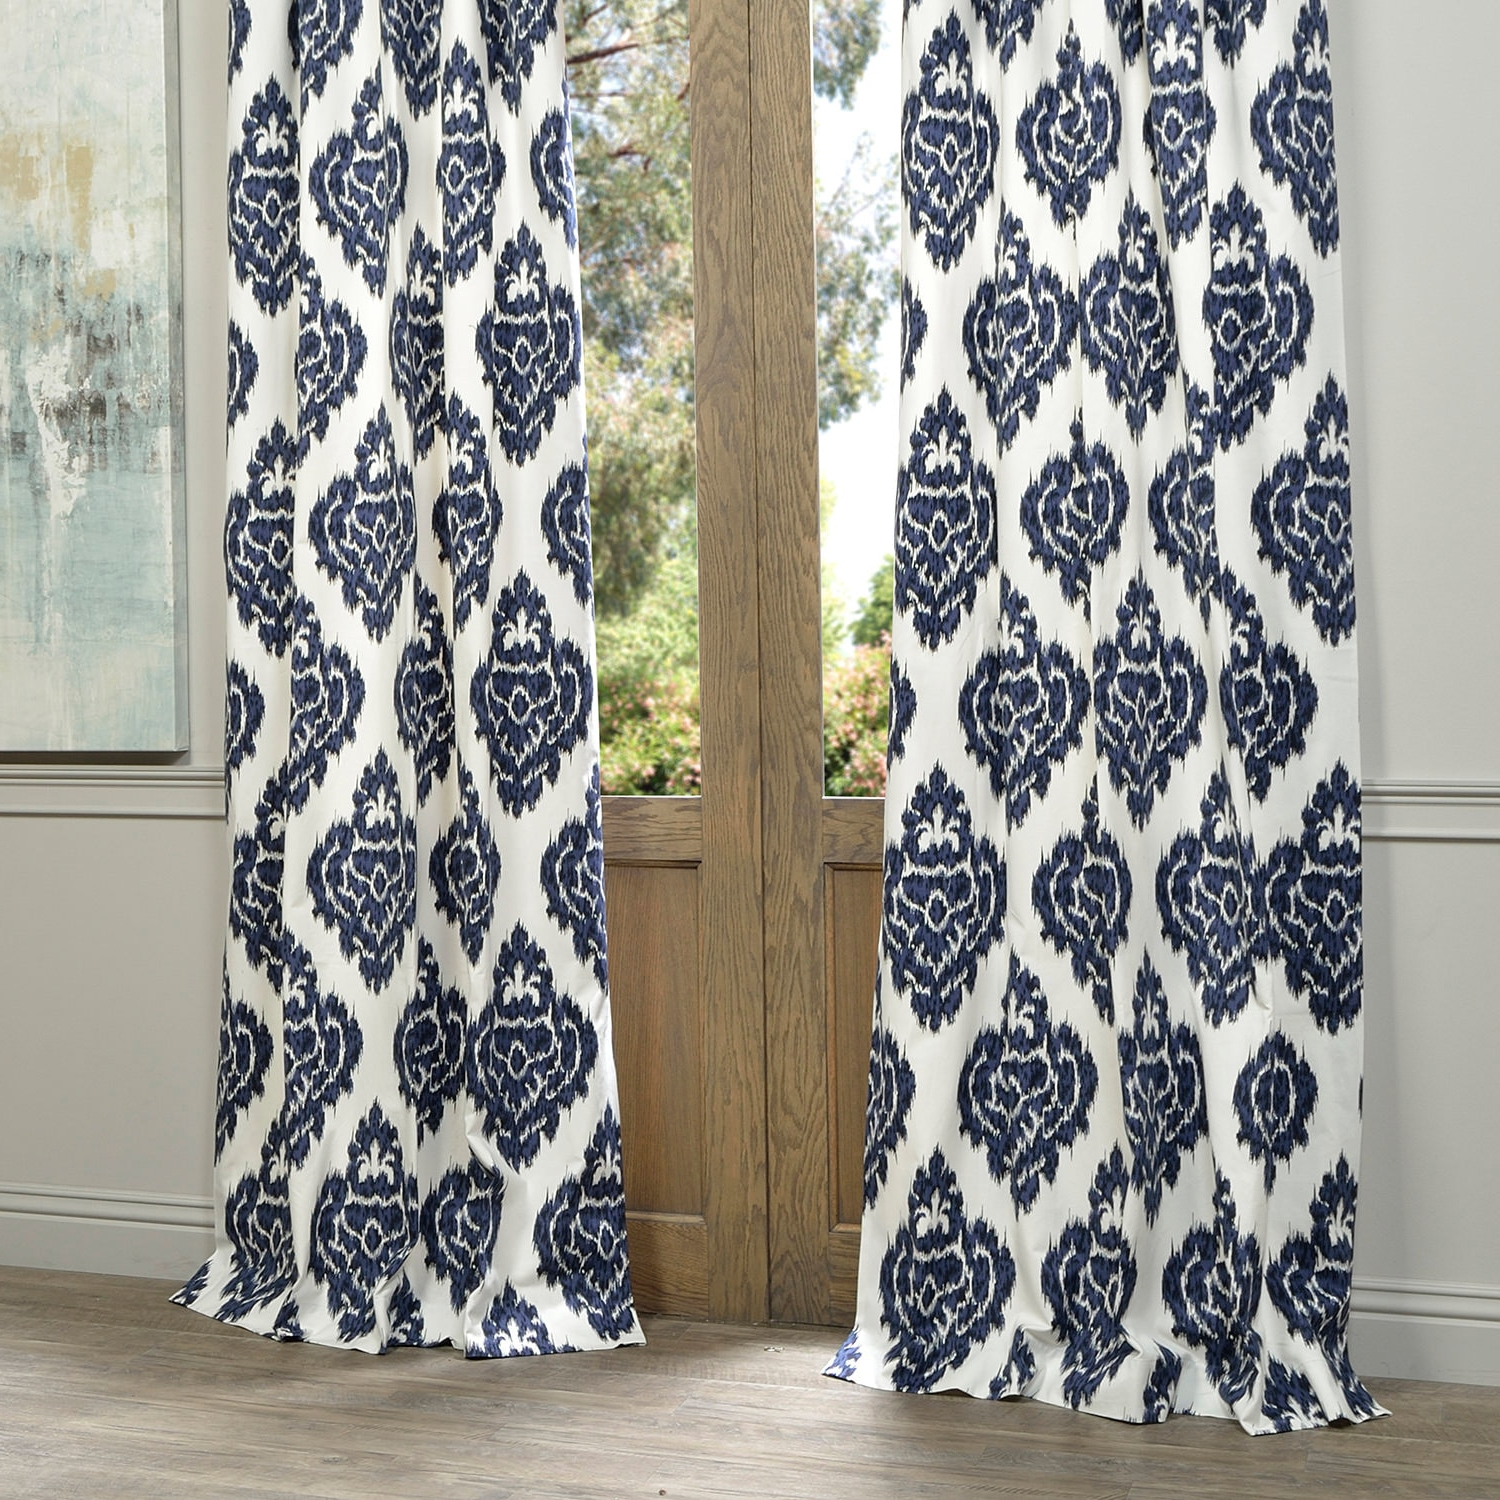 Exclusive Fabrics Ikat Blue Printed Cotton Curtain Panel With Most Up To Date Ikat Blue Printed Cotton Curtain Panels (Gallery 4 of 20)